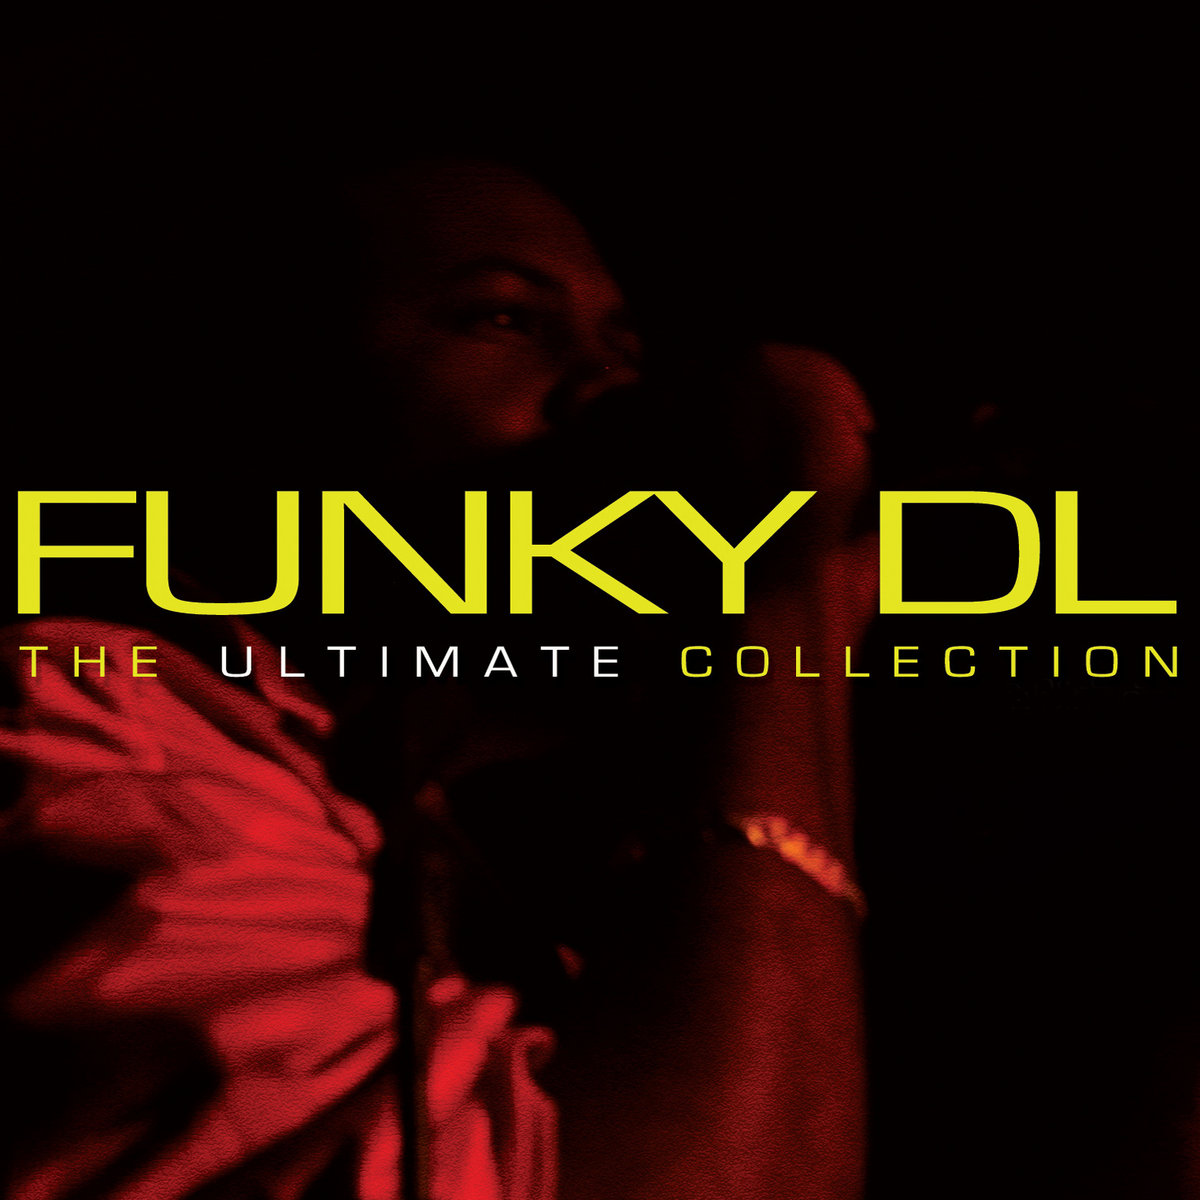 The Ultimate Collection | Funky DL